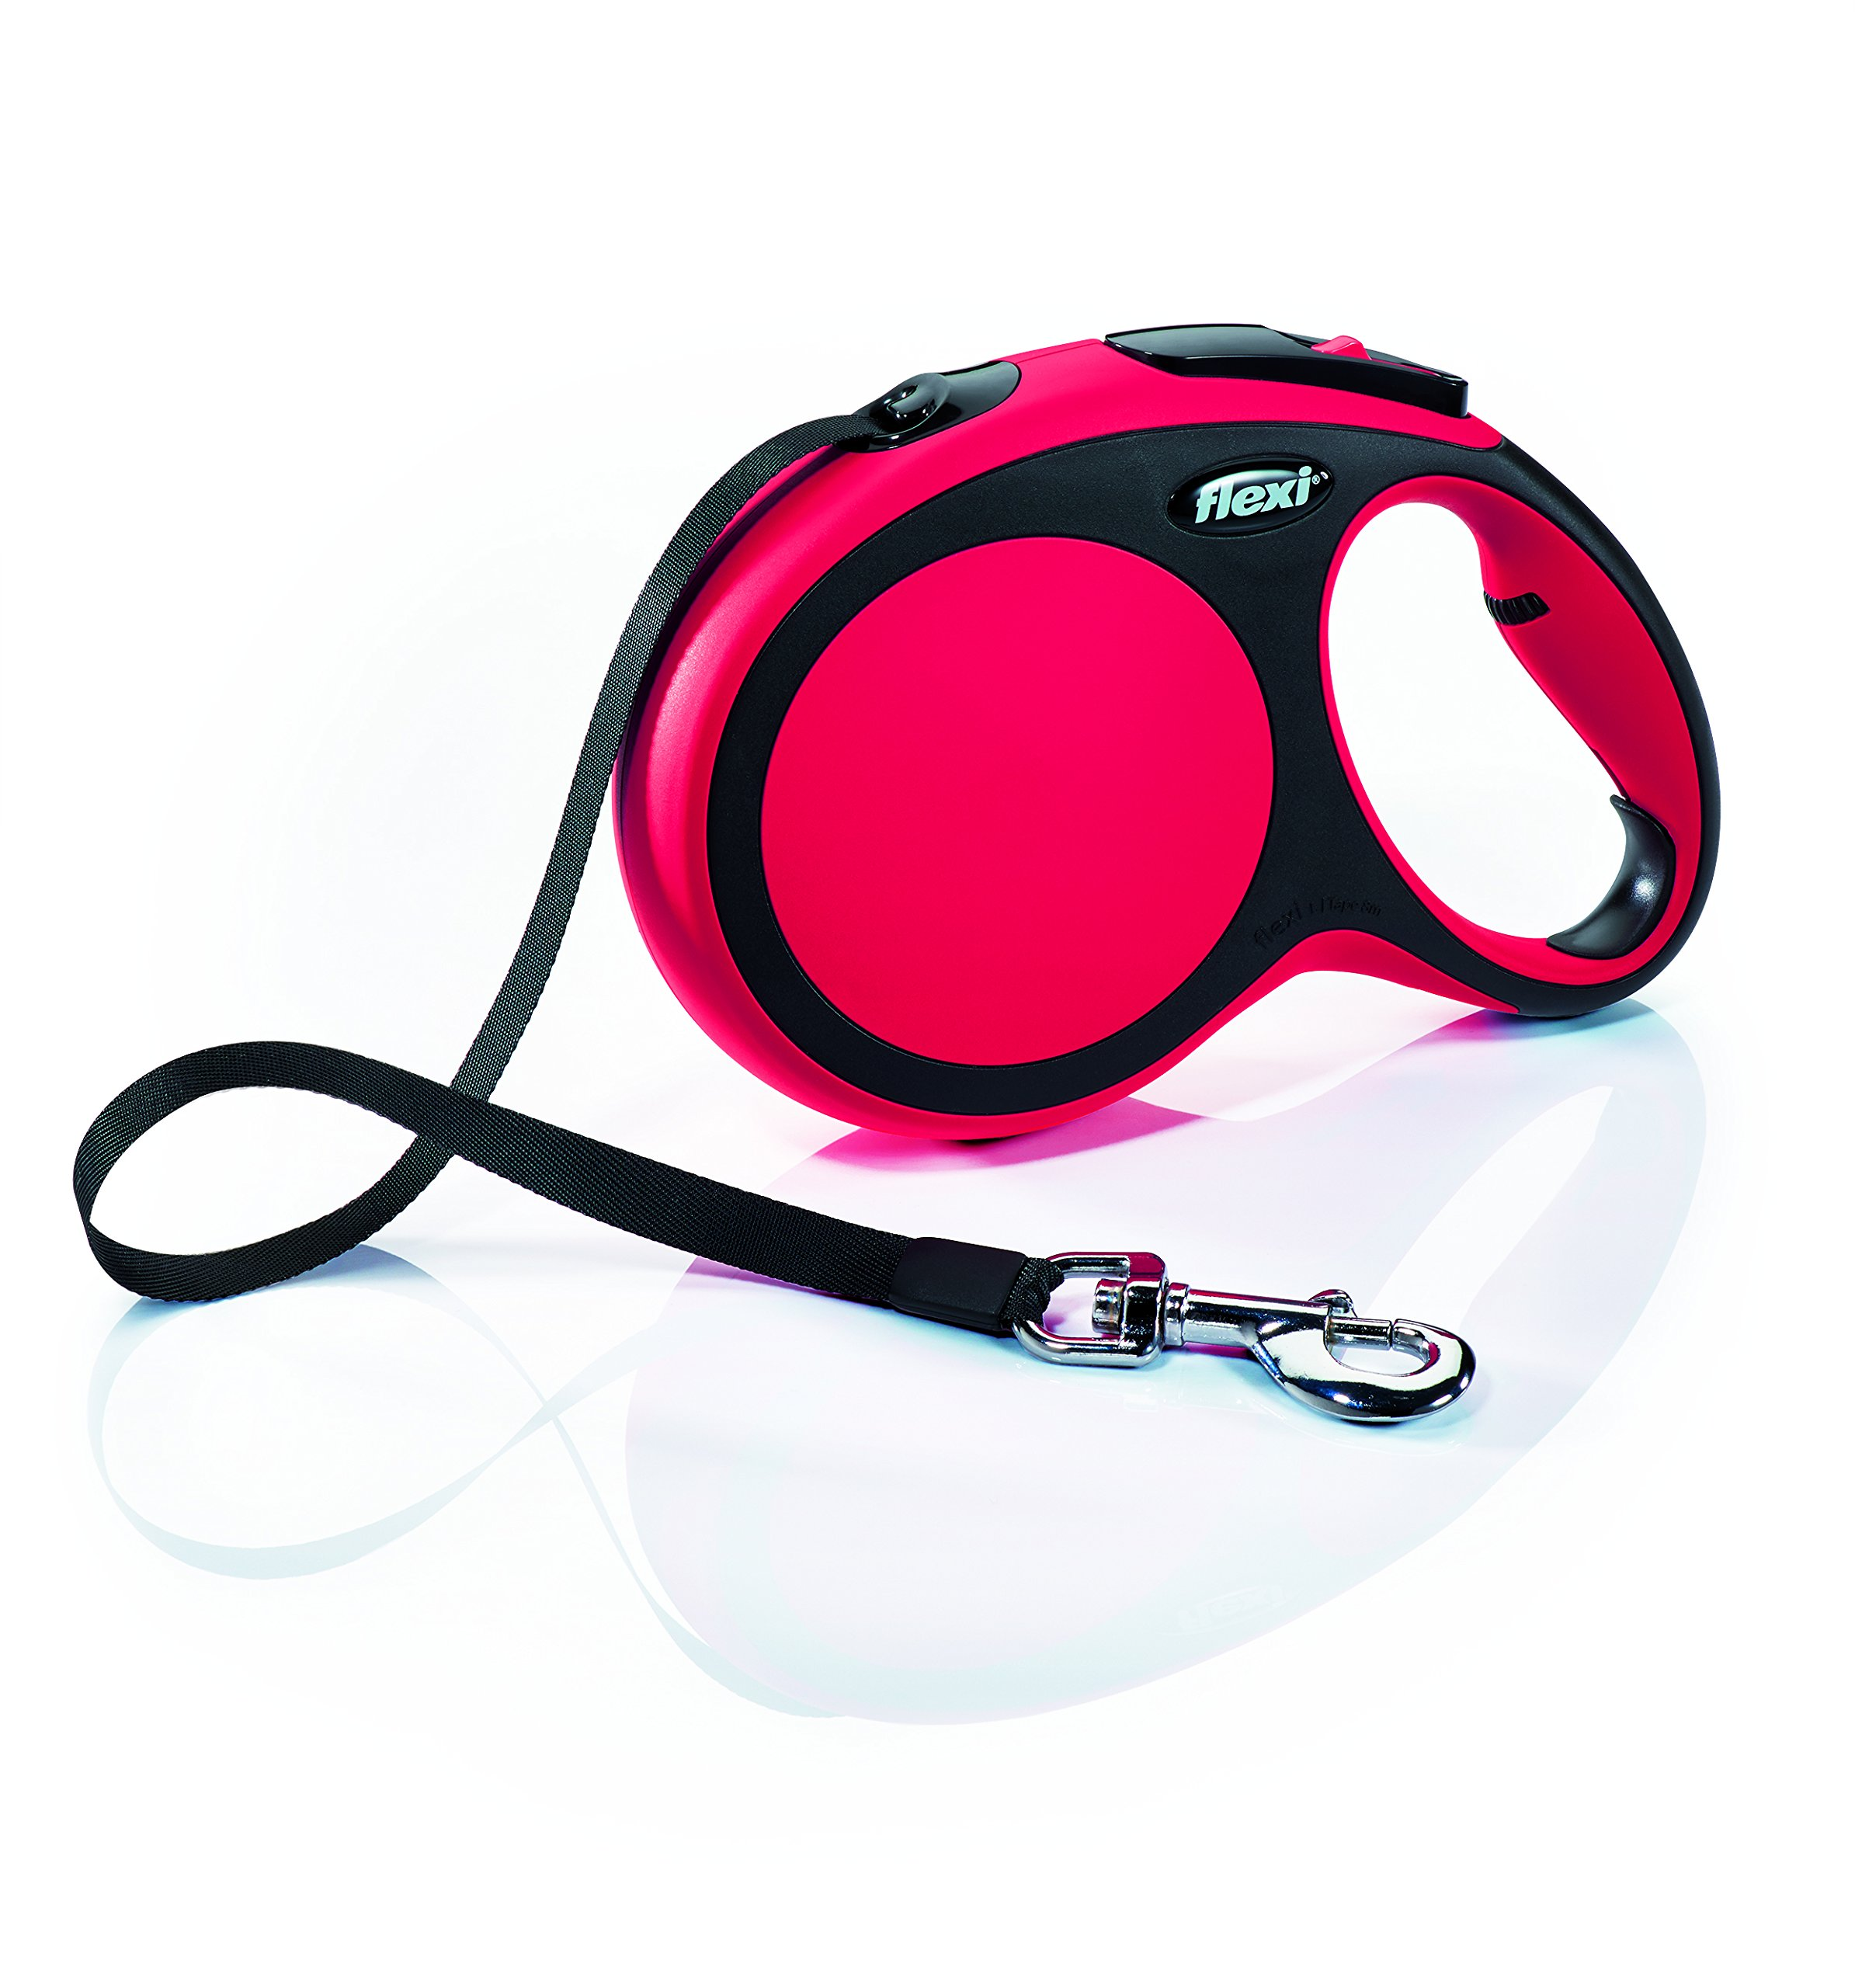 Flexi New Comfort Retractable Dog Leash (Tape), 26 ft, Large, Red by Flexi